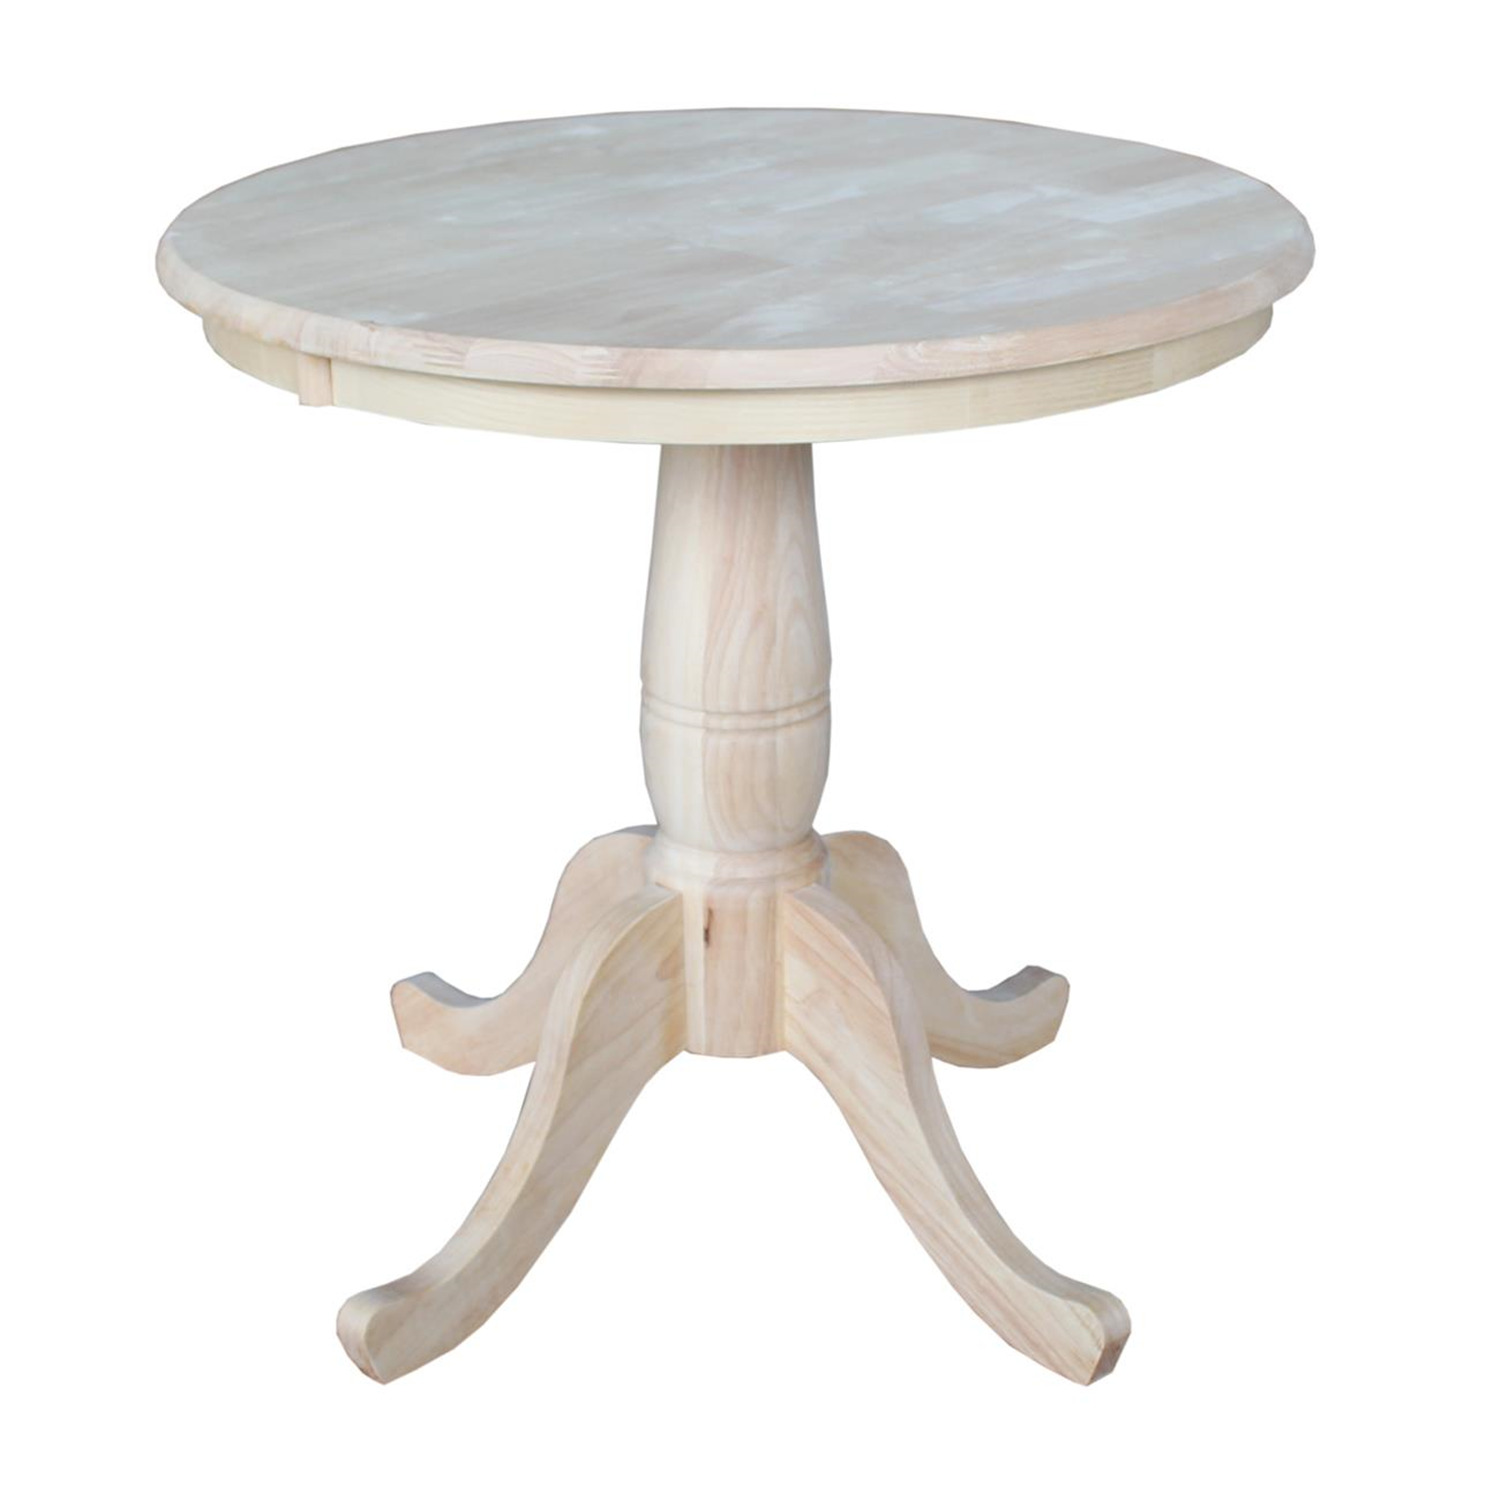 International concepts round top pedestal table by oj for Pedestal table